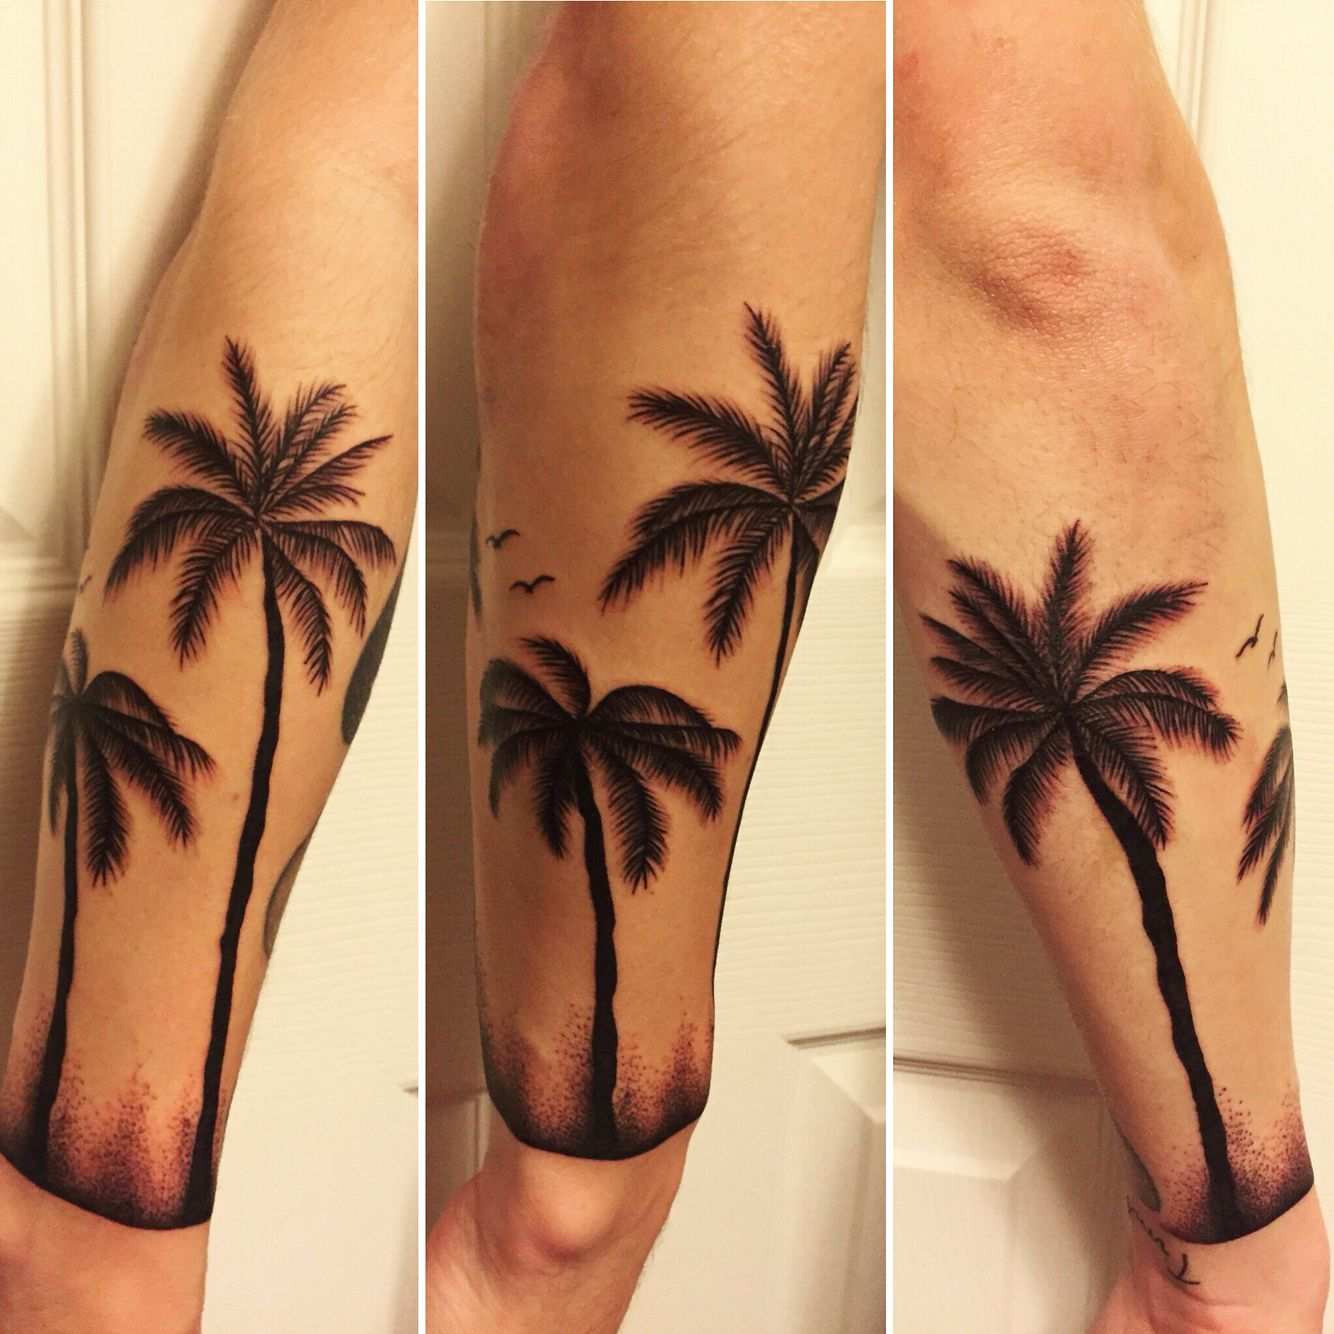 My new tattoo. Palm trees & dot work wrapped around my